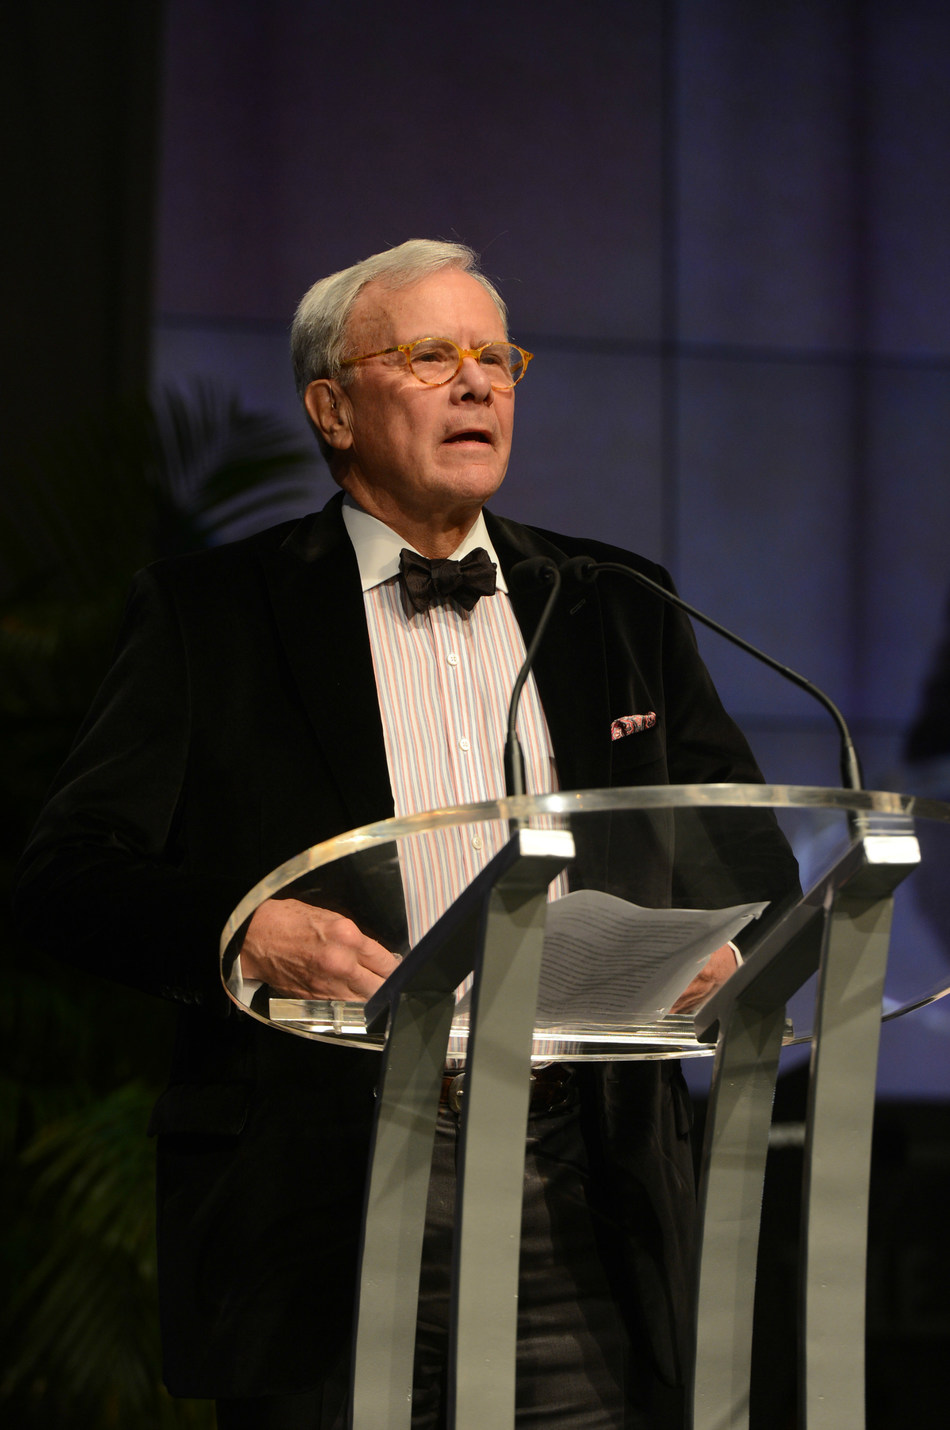 Tom Brokaw will be among the special guests at the National WWII Museum's American Spirit Awards gala.